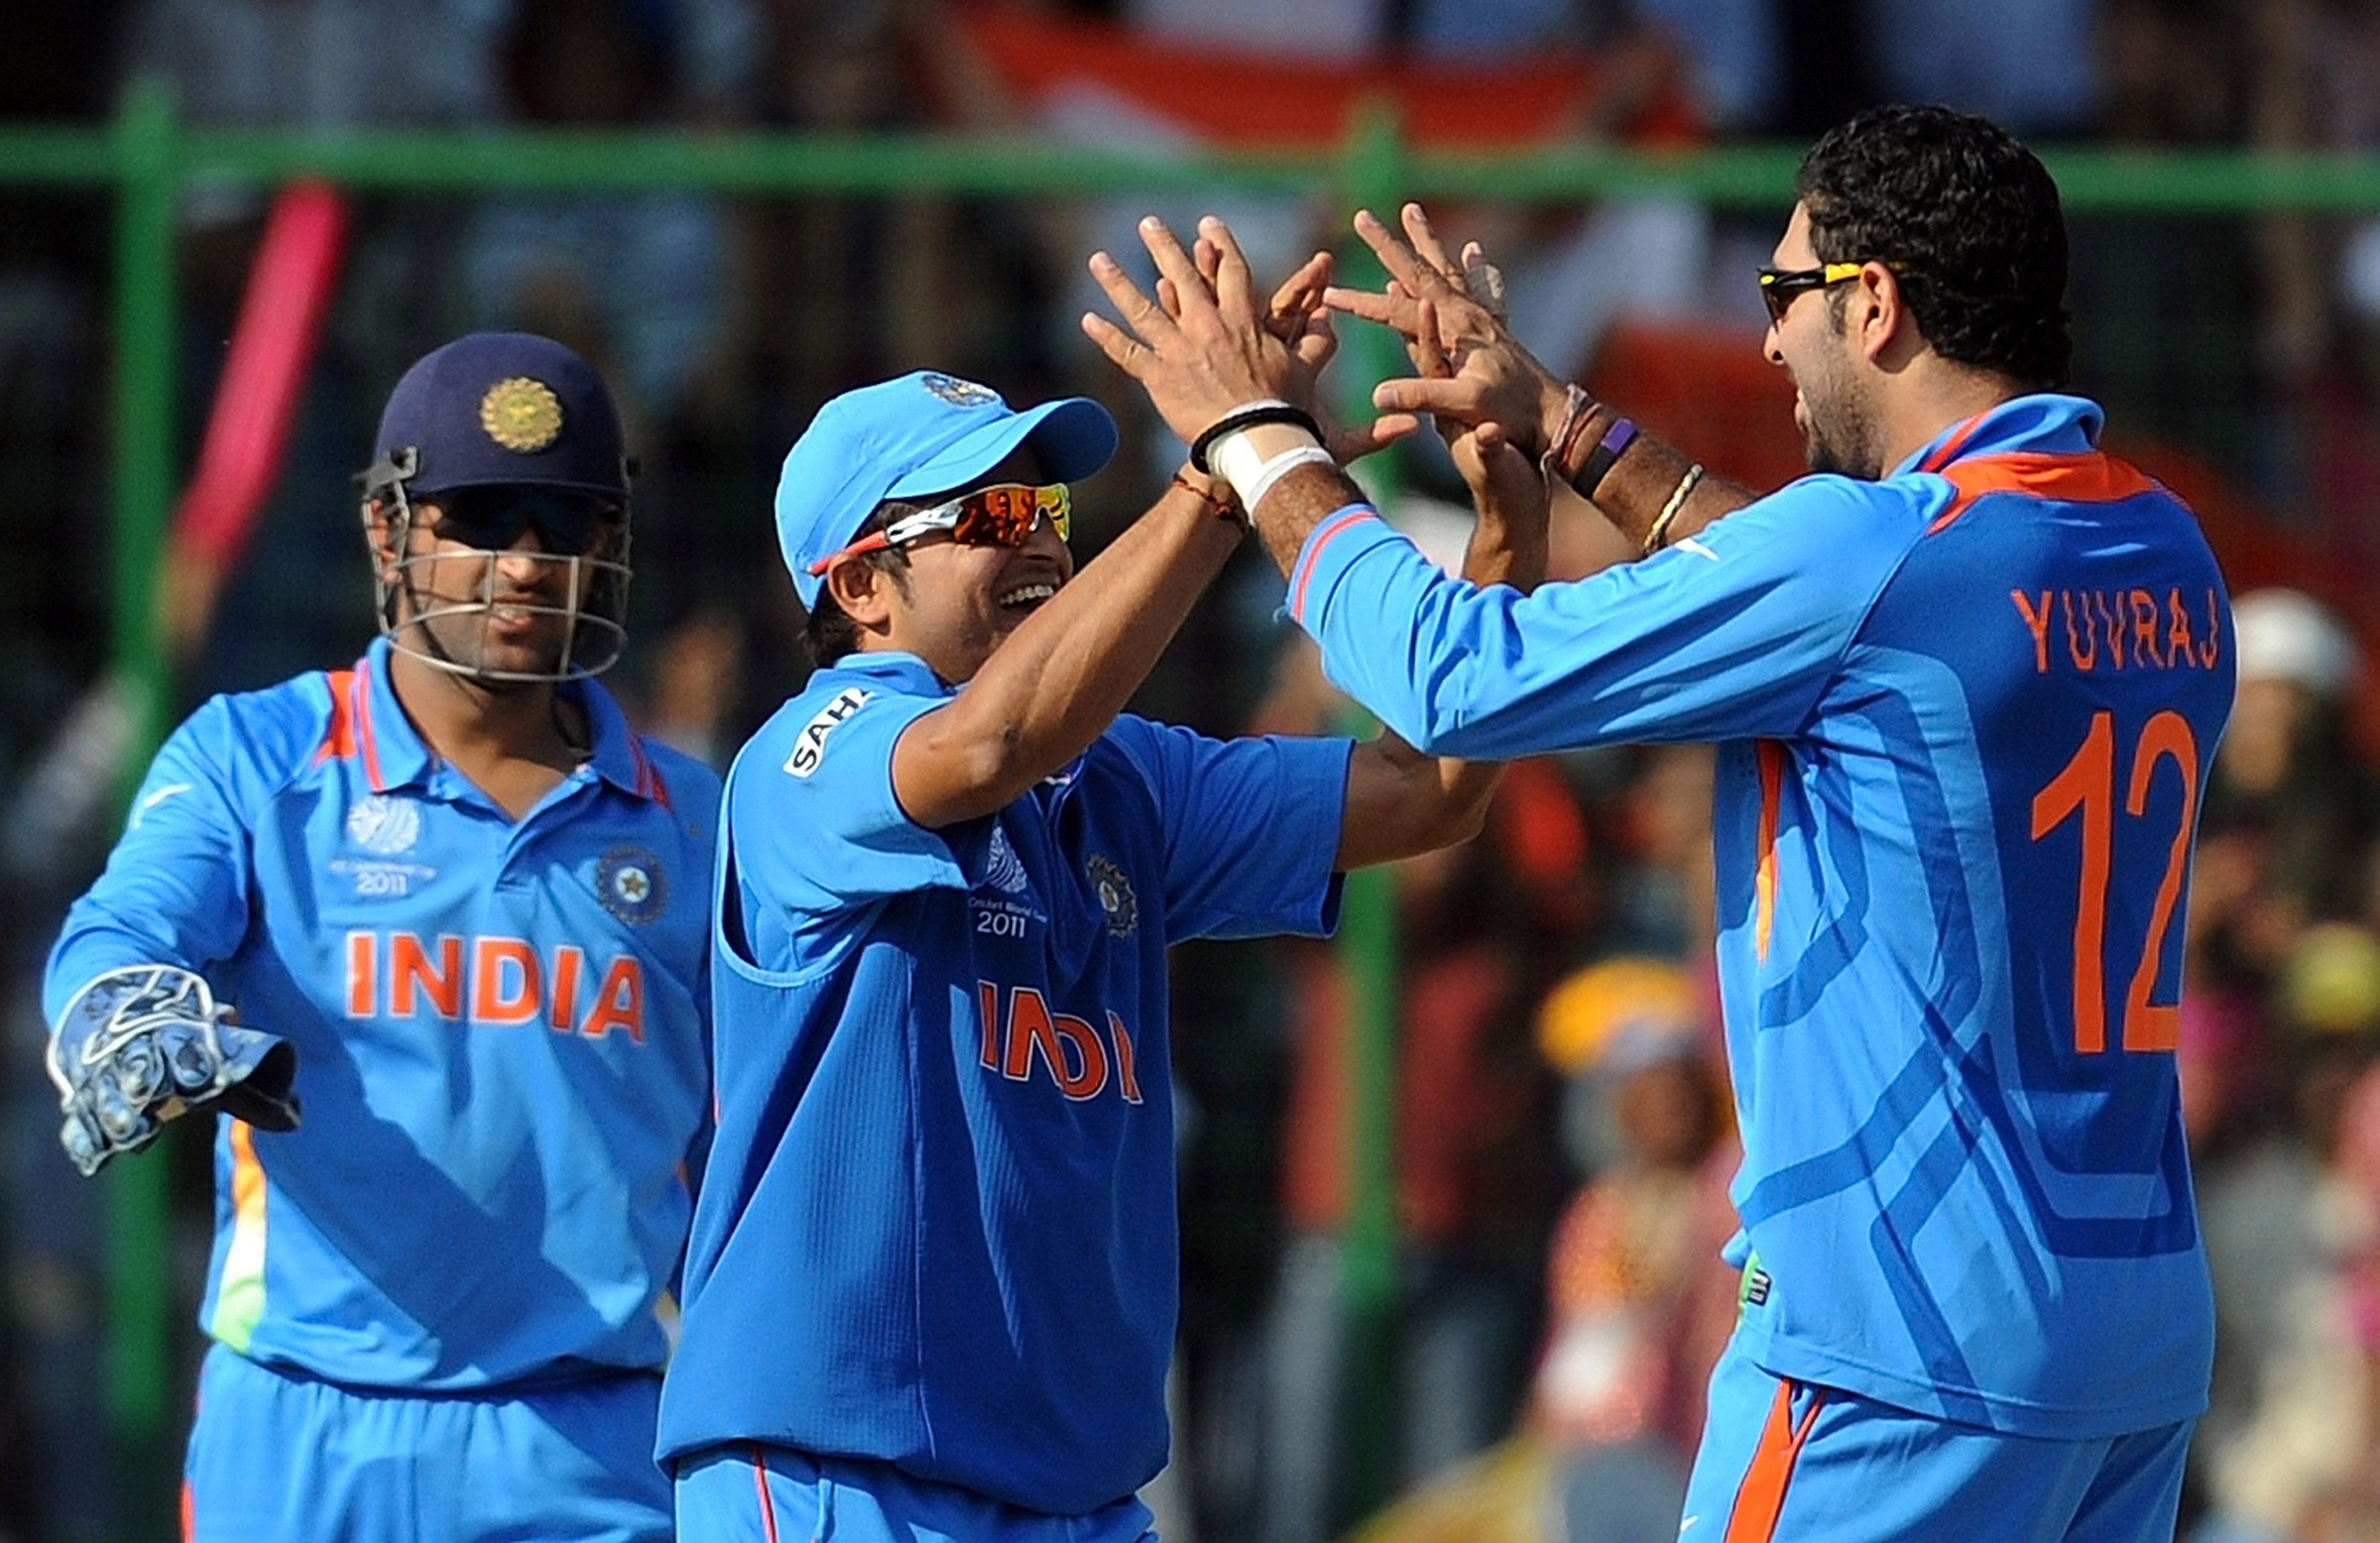 Will Dhoni Raina and Yuvraj find themselves in the same XI again? / Getty